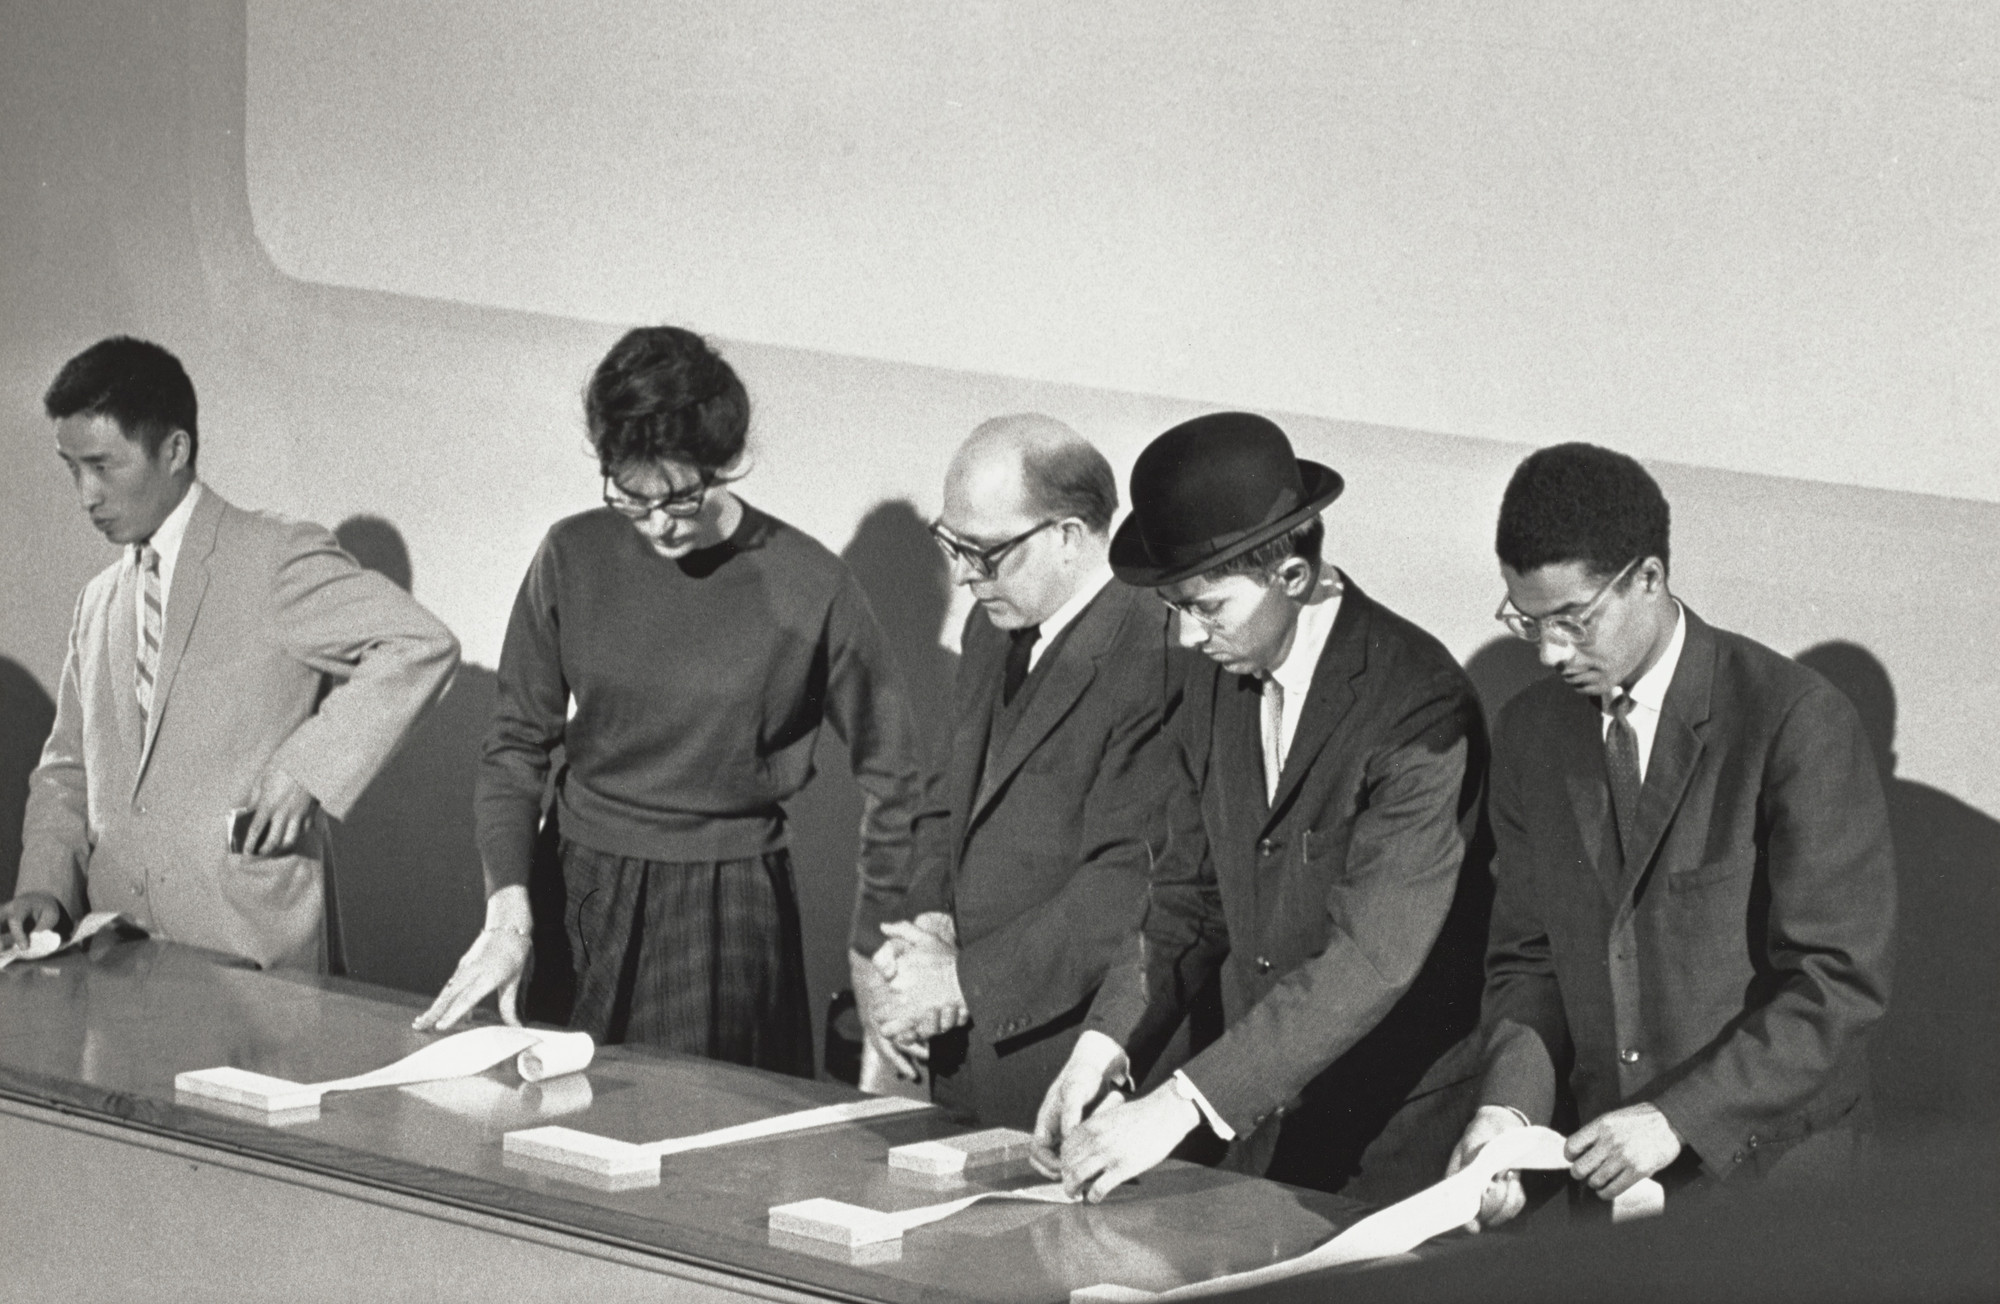 George Maciunas, Nam June Paik, Alison Knowles, Emmett Williams, George Maciunas, Benjamin Patterson. George Maciunas' In Memoriam to Adriano Olivetti, performed during Concert No. 5, Fluxus Internationale Festspiele Neuester Musik, Städtisches Museum, Wiesbaden, September 8, 1962. 1962